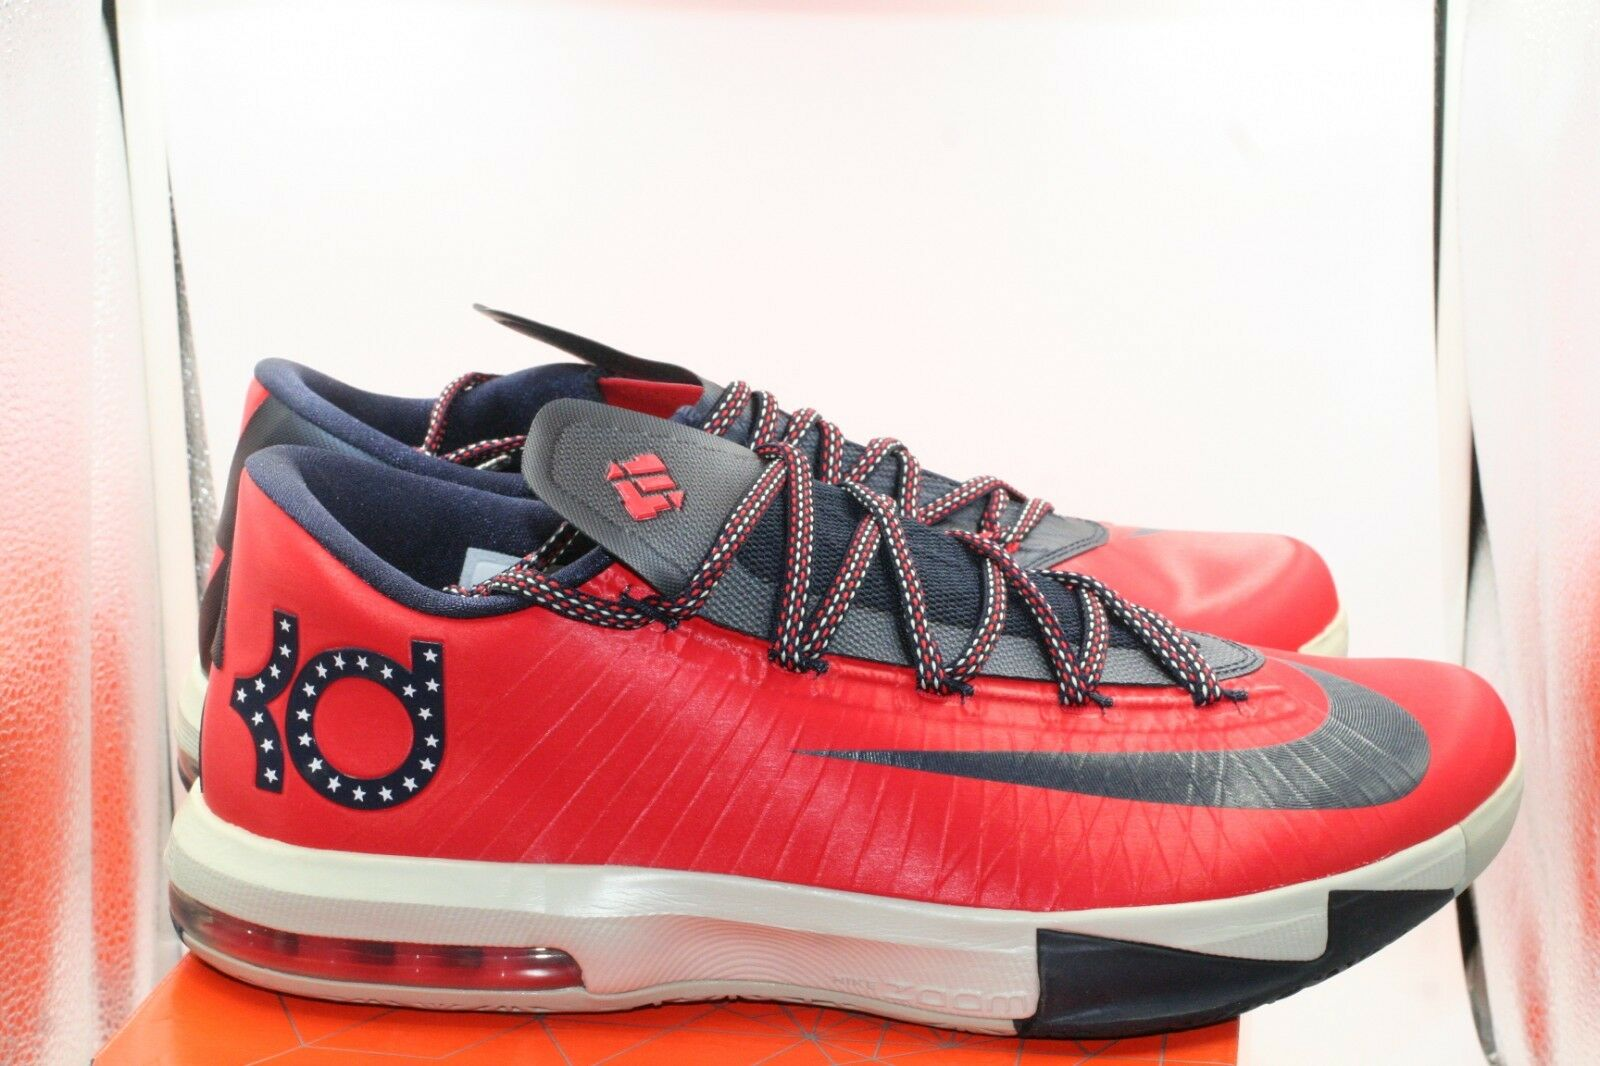 Nike KD 6 VI Size 11 Washington D.C. Crimson Red Obsidian bluee Team USA Durant